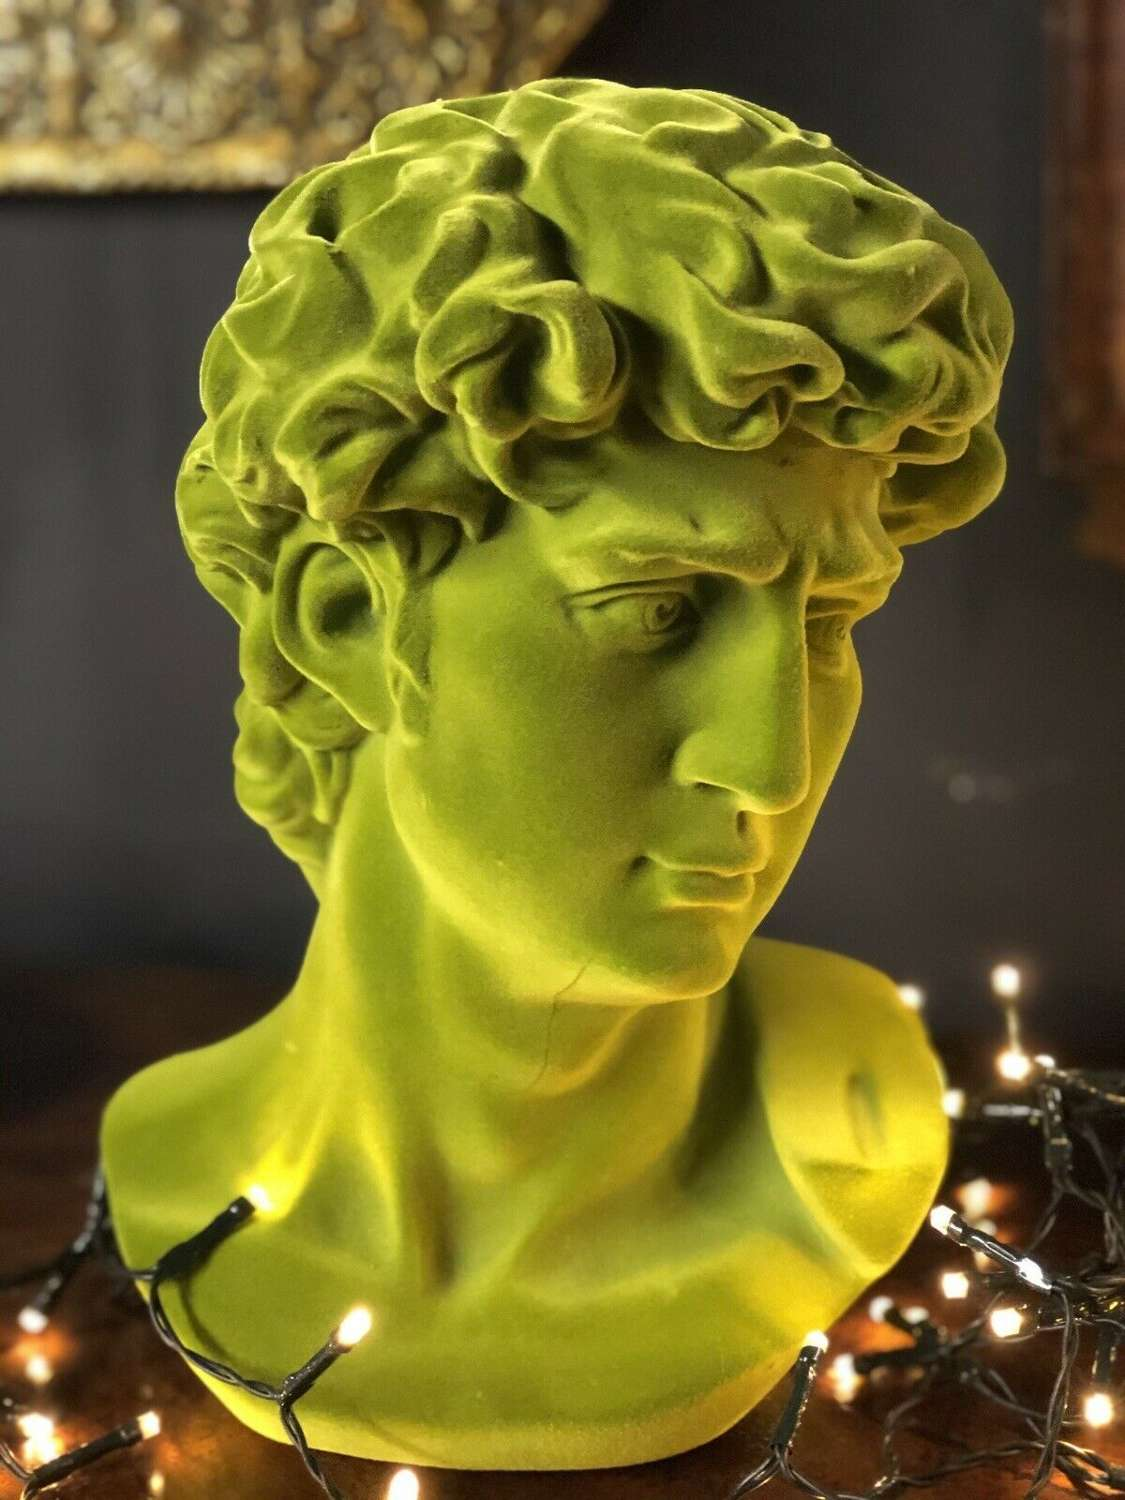 Flock green Michelangelo's David